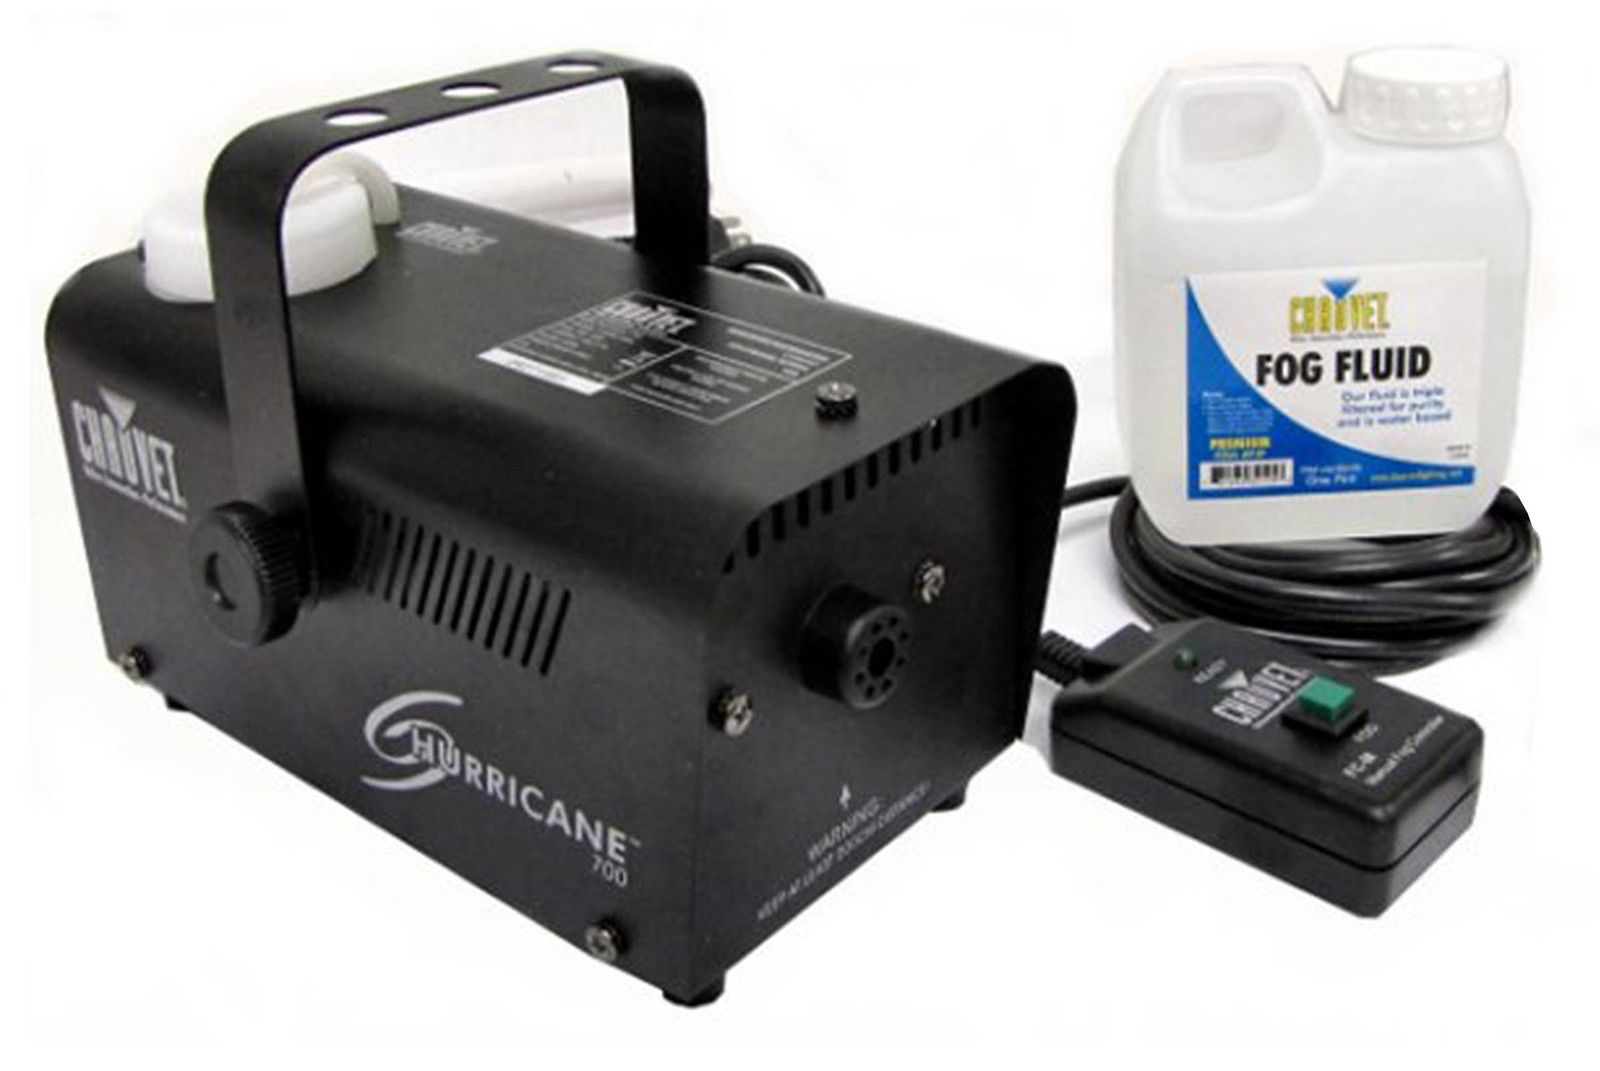 CHAUVET HURRICANE 700 Pro Fog/Smoke Machine